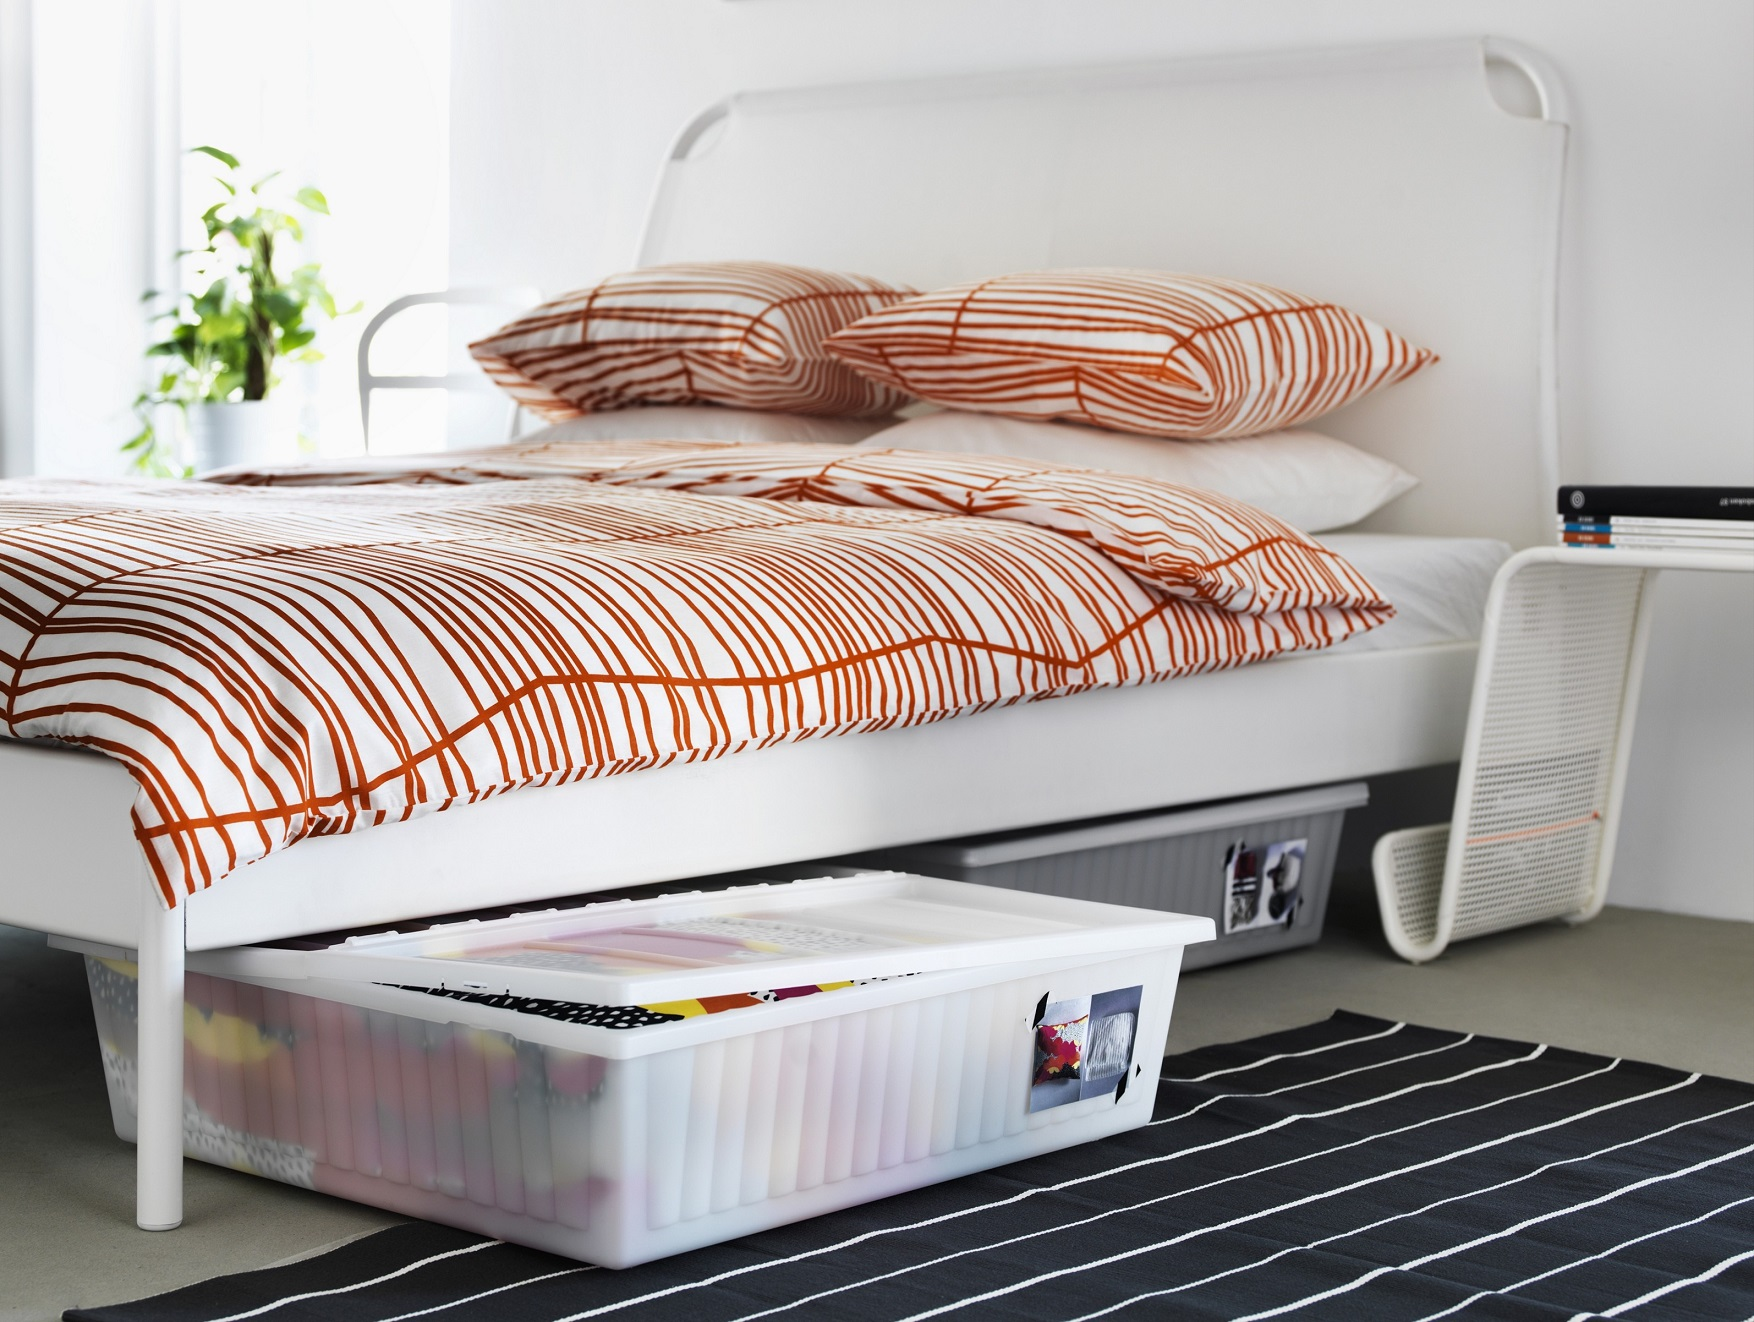 If Your Bed Lacks Storage, Then Use Storage Boxes To Cope Up.